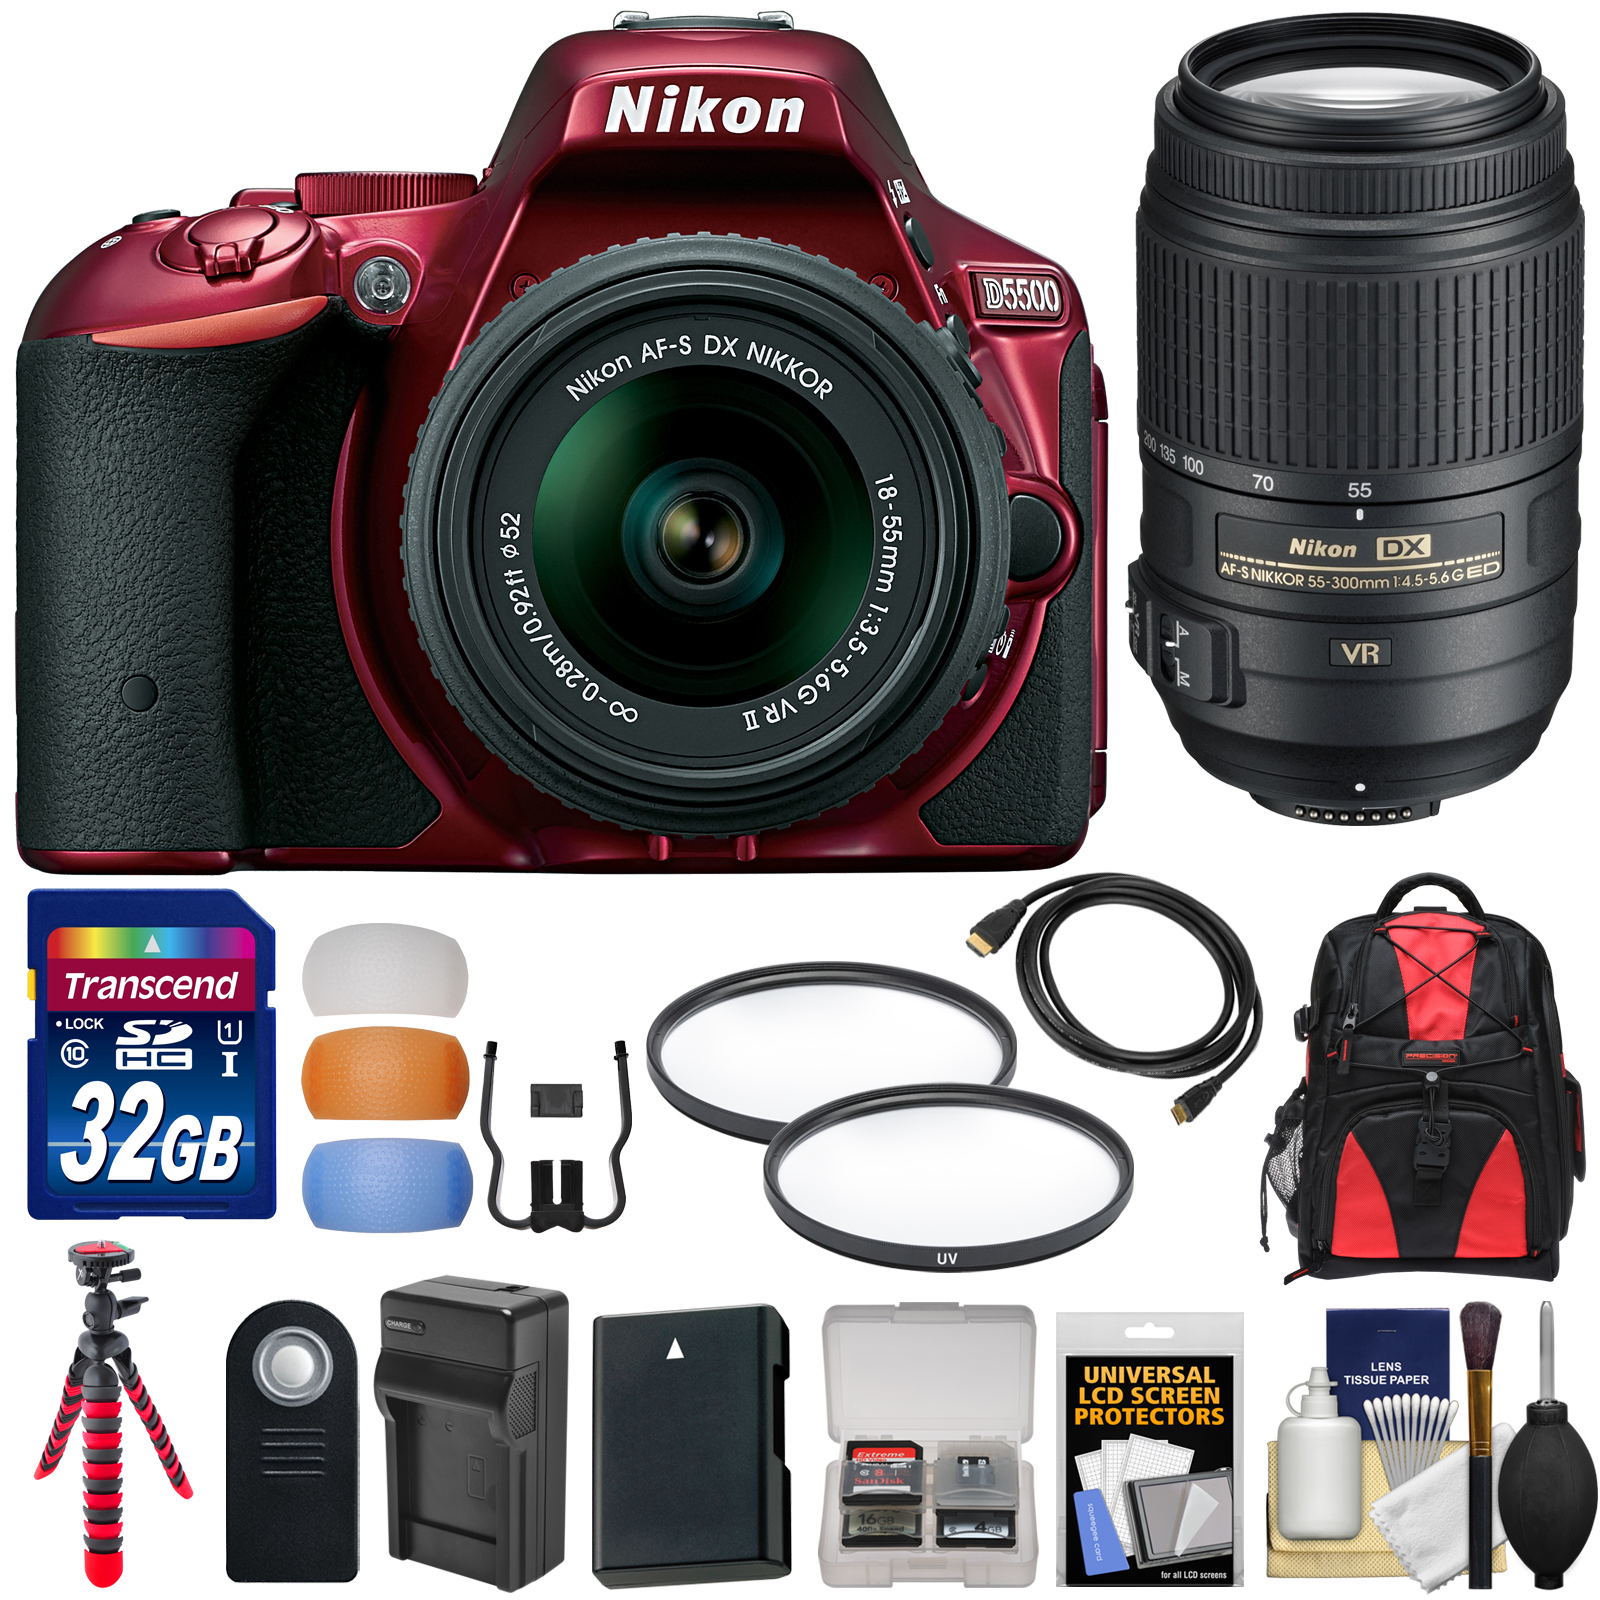 Nikon D5500 Wi-Fi Digital SLR Camera & 18-55mm G VR DX II (Red) with 55-300mm VR Lens + 32GB Card + Backpack + Battery & Charger + Flex Tripod + Kit